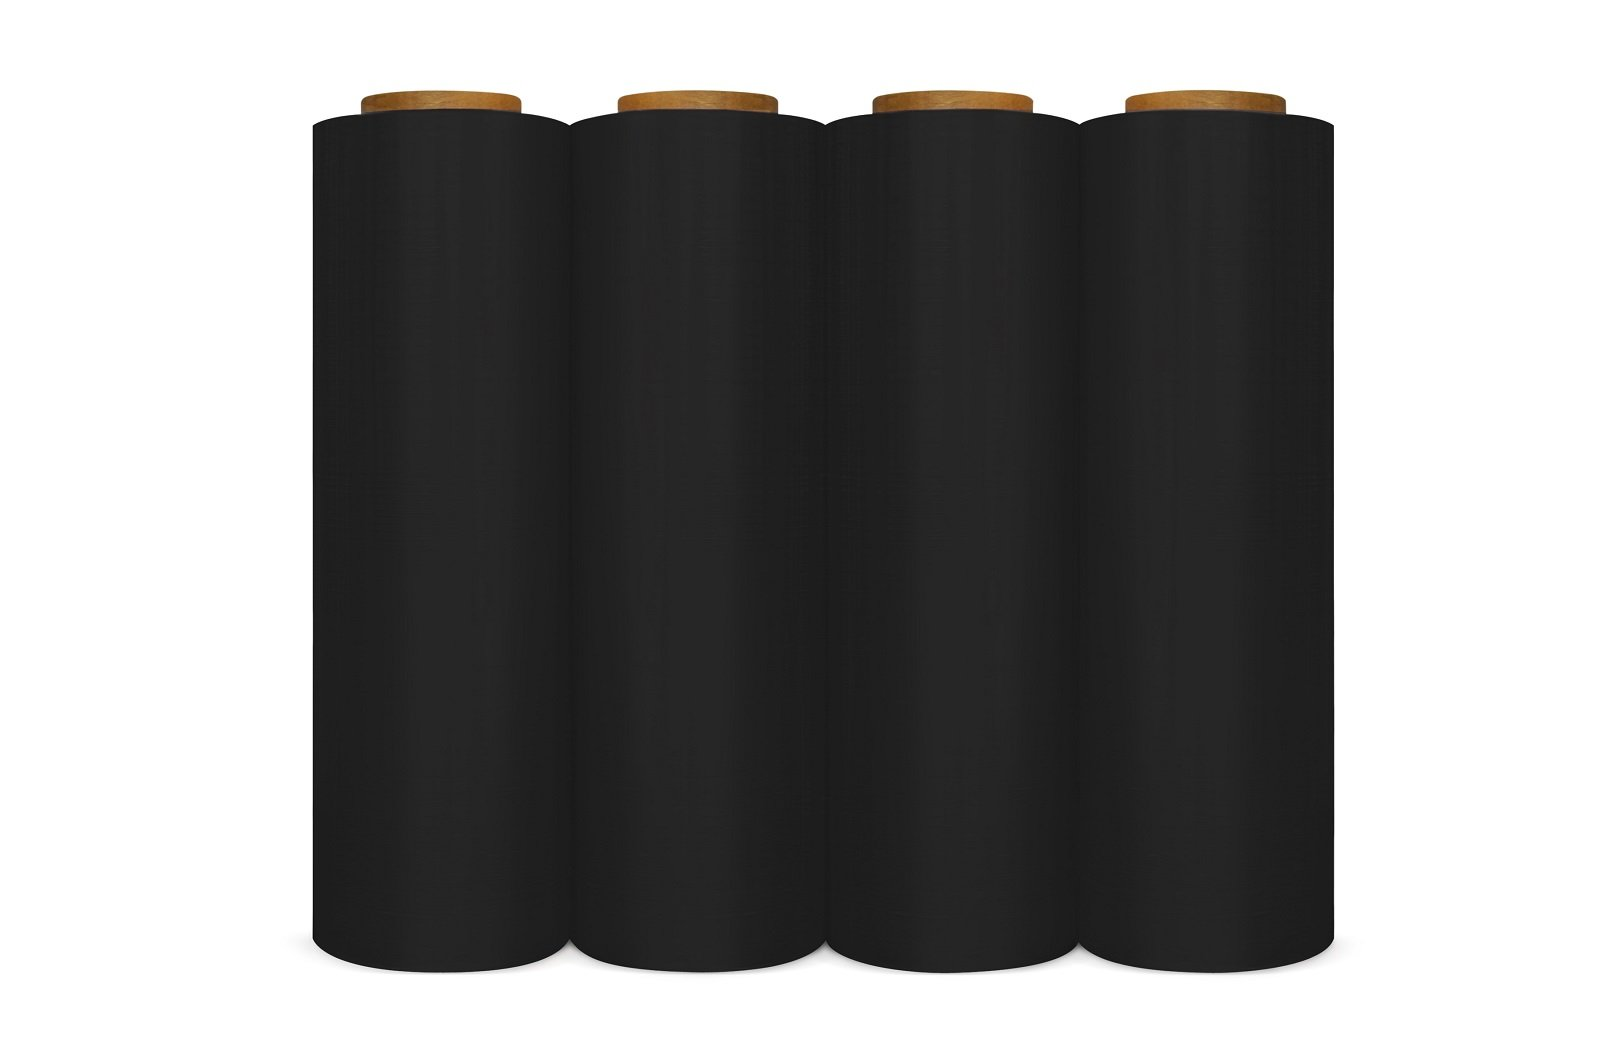 4 Rolls Black Hand Pallet Wrap Plastic Stretch Film 18'' Wide x 1000 Ft.